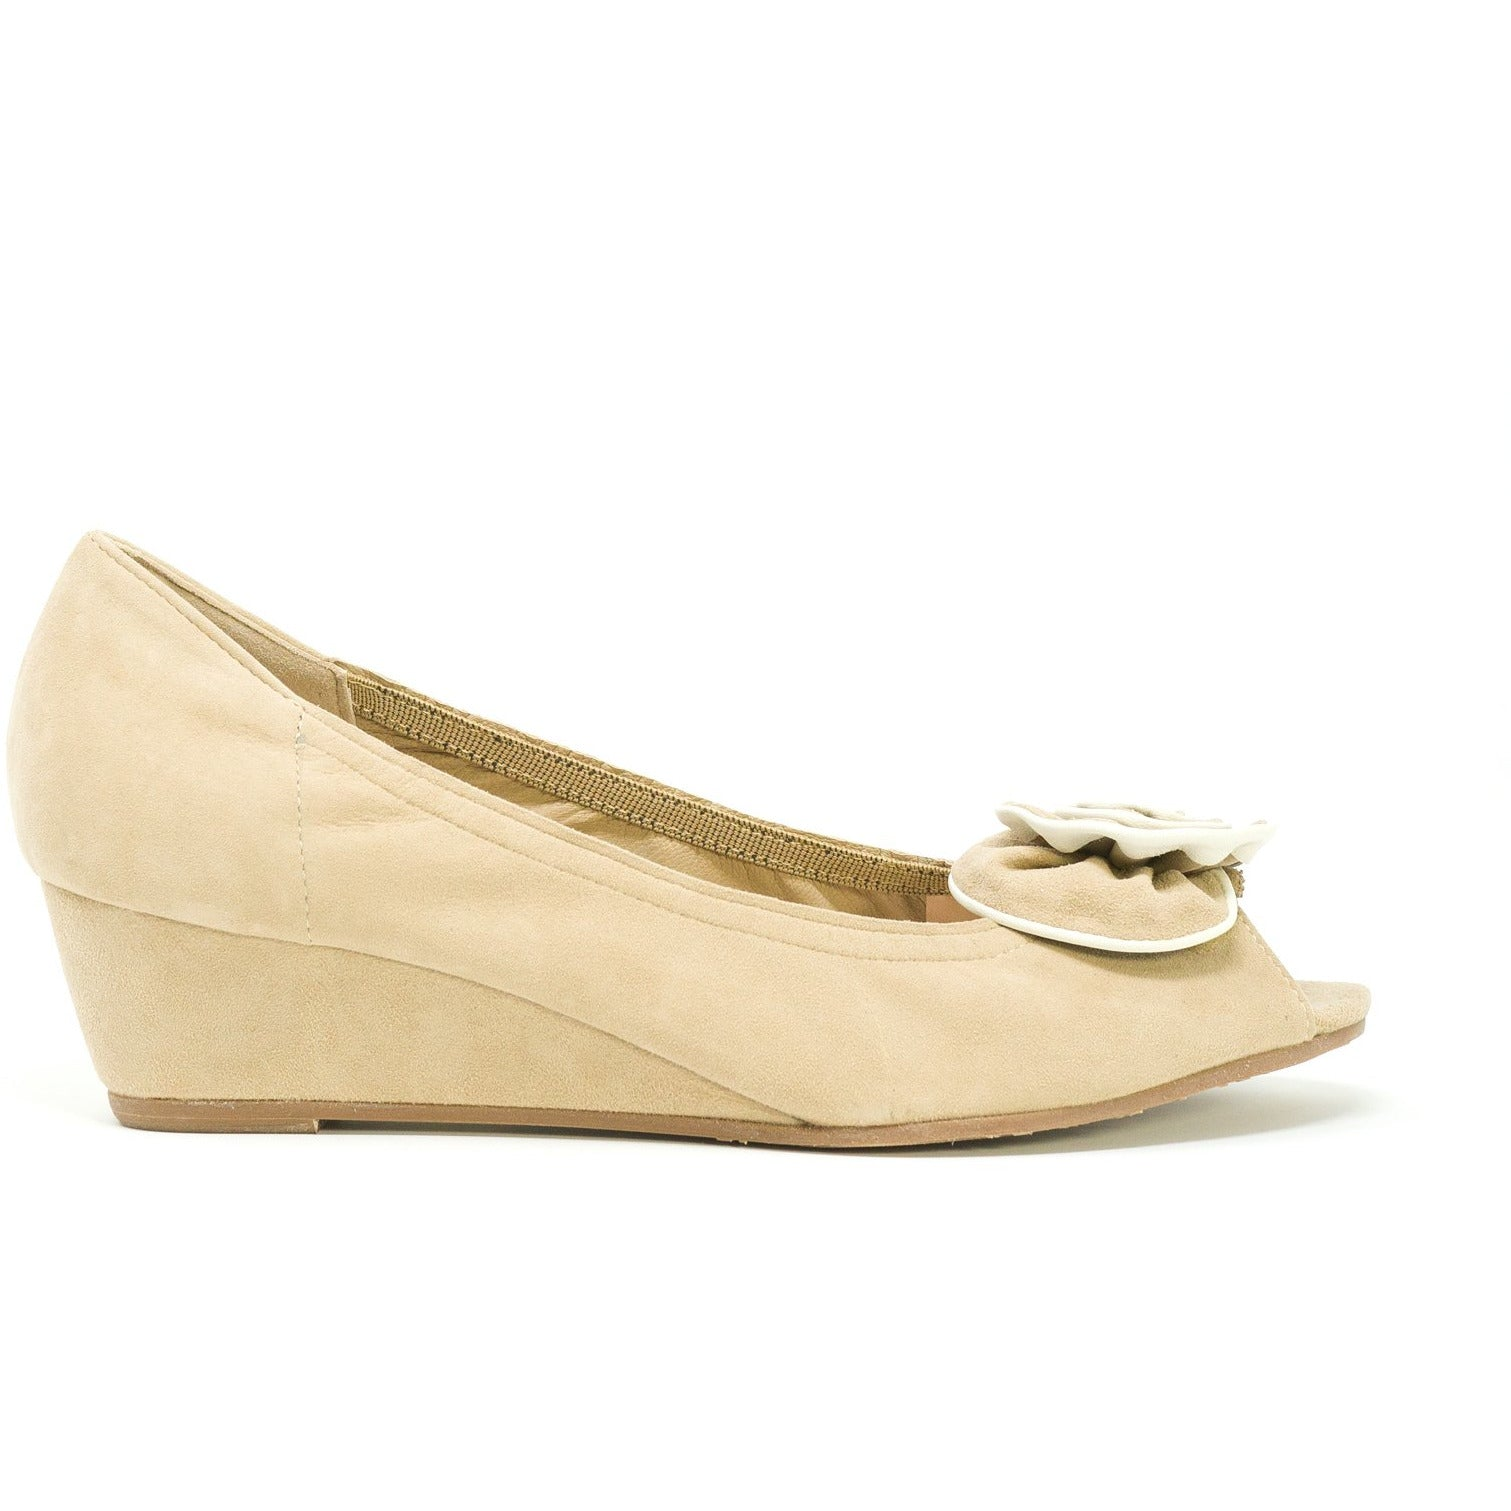 Women Open-Toe Wedges in Suede Beige